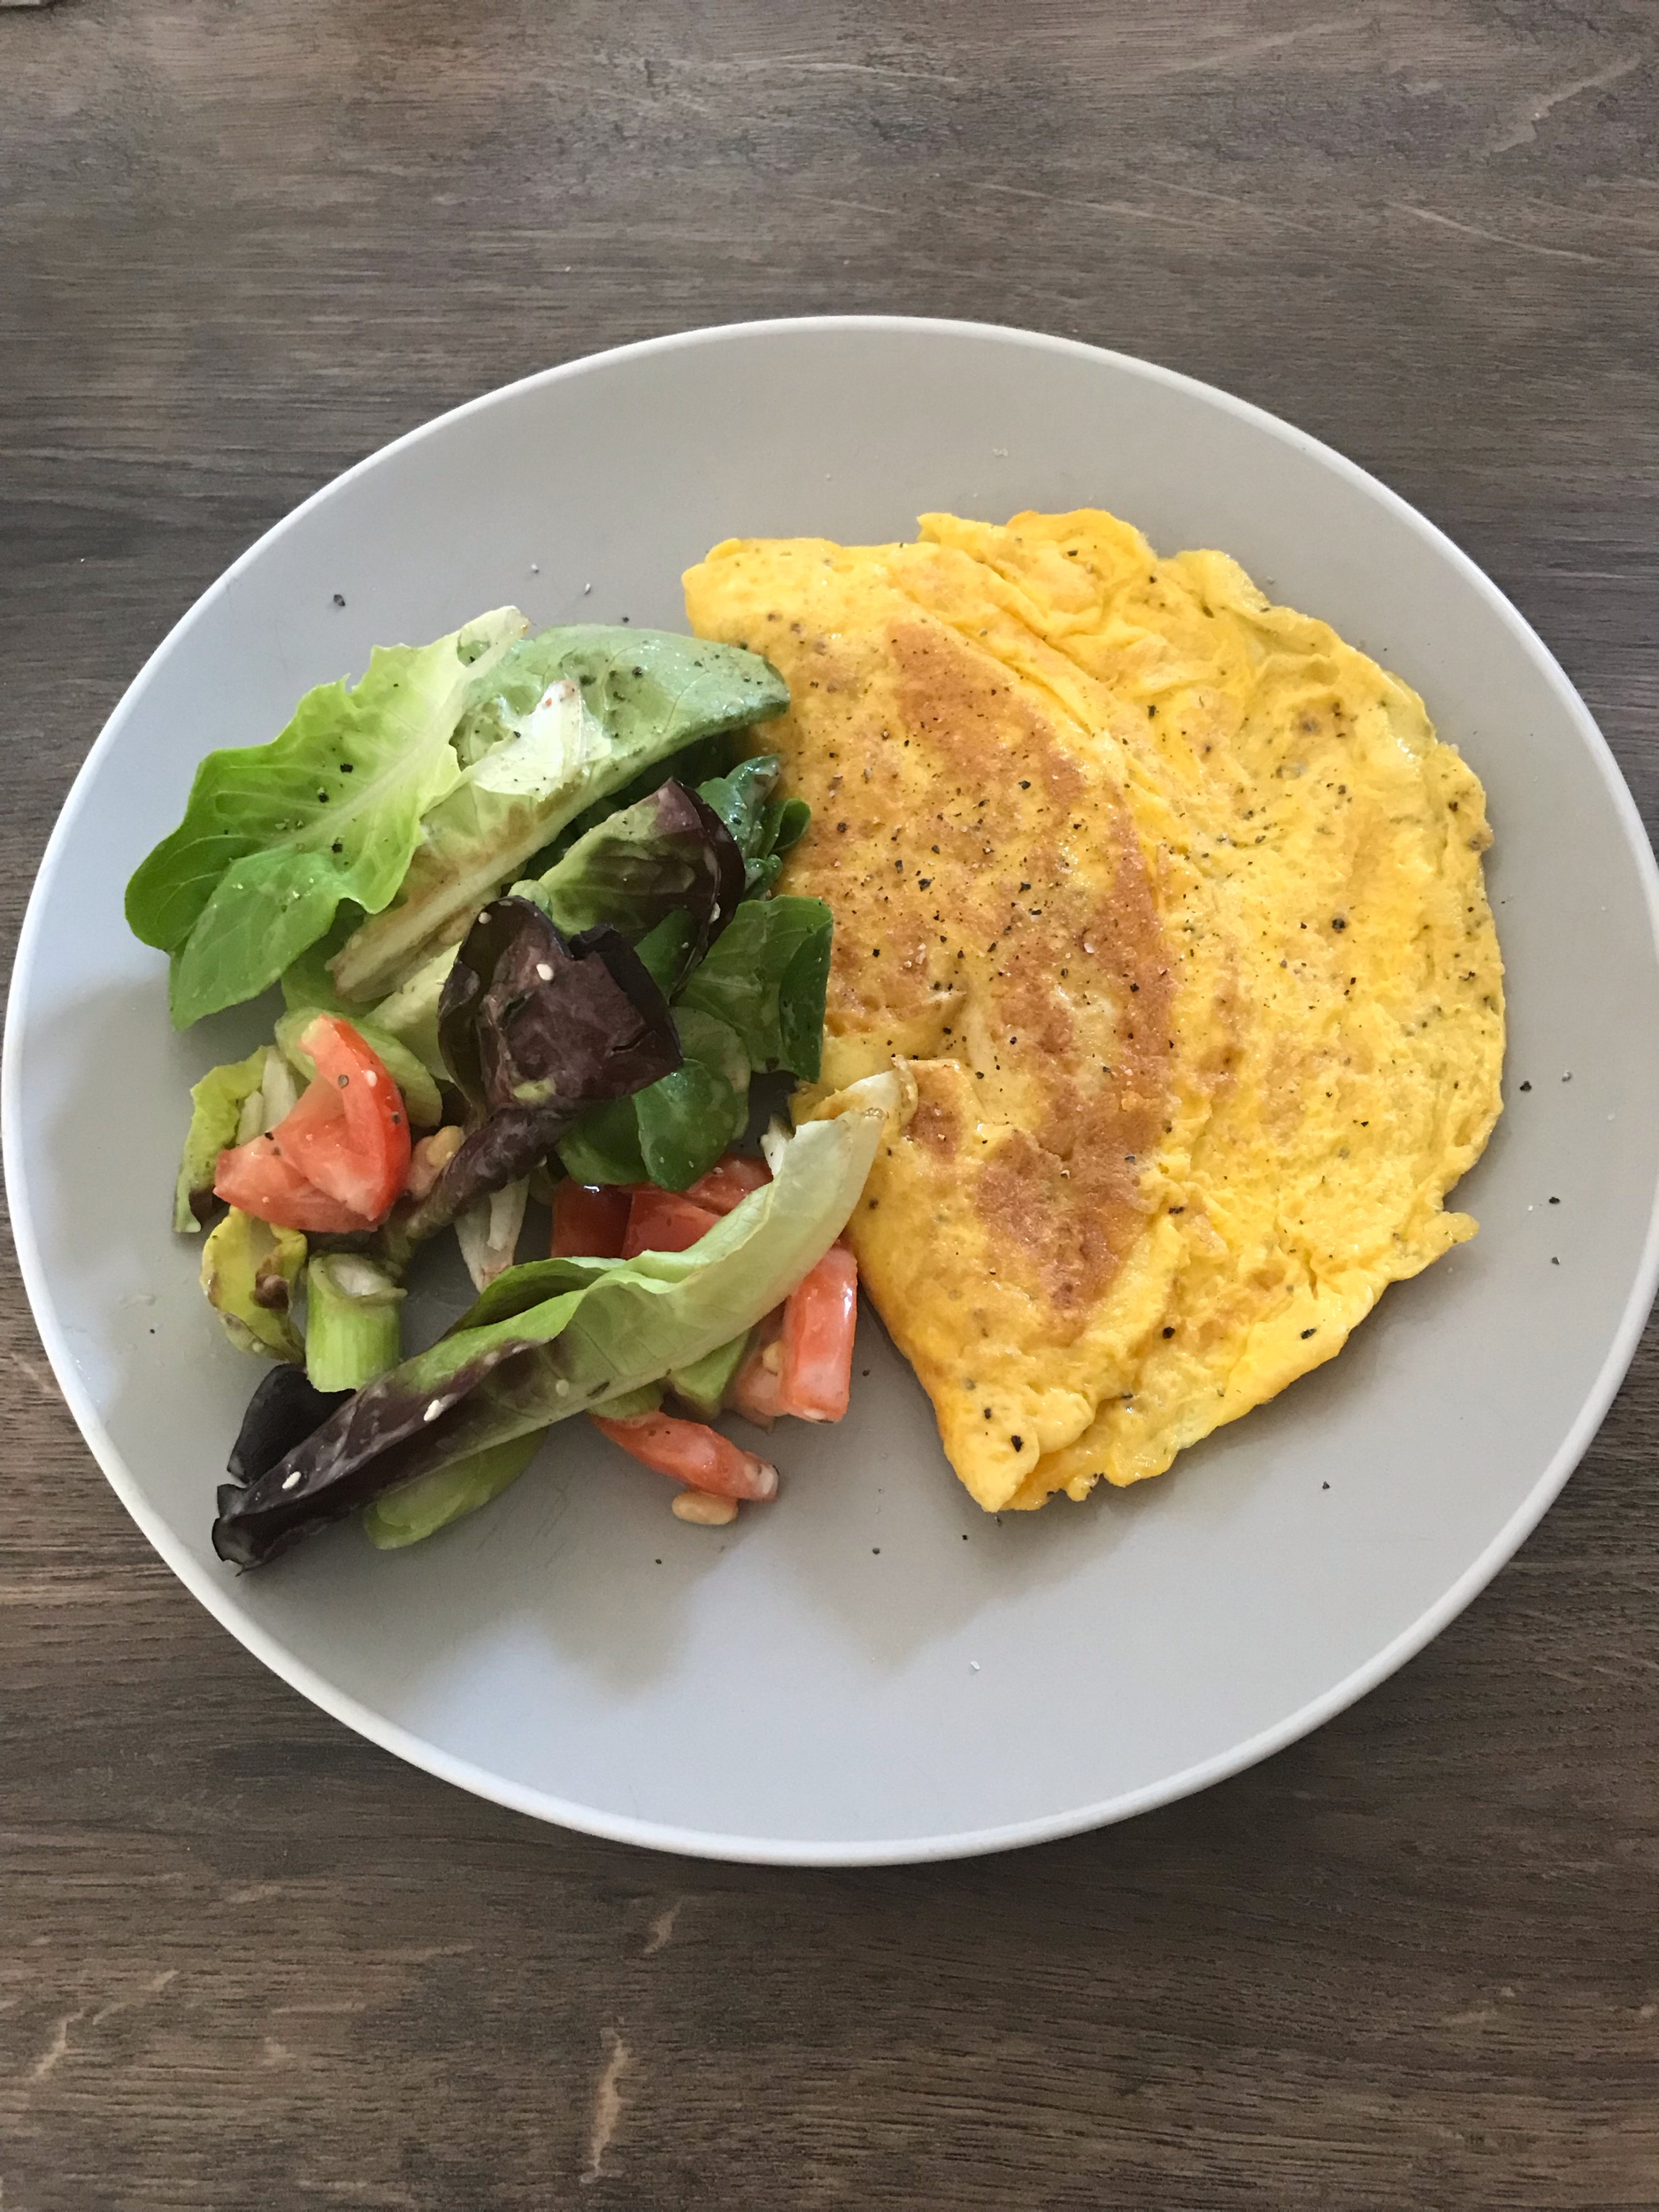 Omelette and salad is both light, quick and easy.